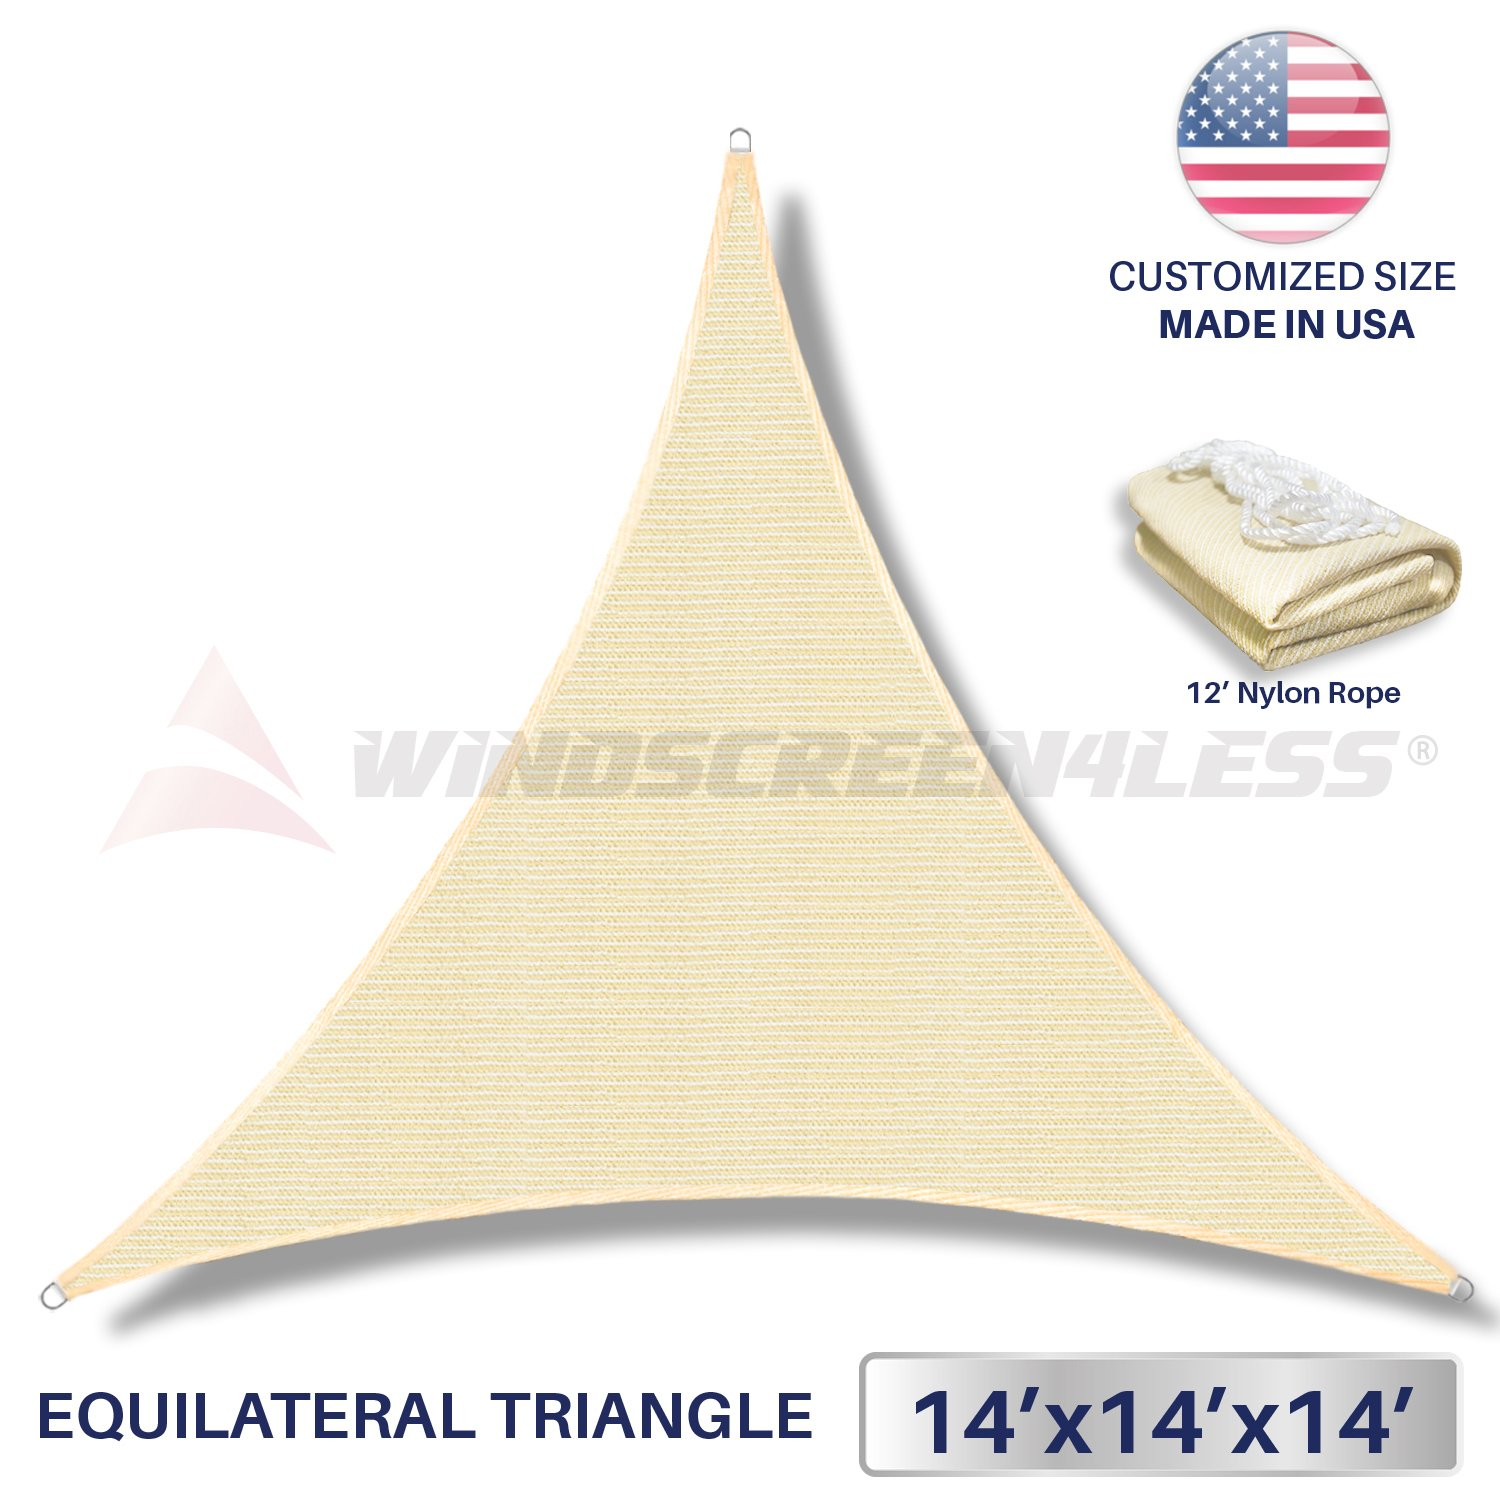 14' x 14' x 14' Sun Shade Sail UV Block Fabric Canopy in Beige Sand Triangle for Patio Garden Patio Customized Size (3 Year Warranty)